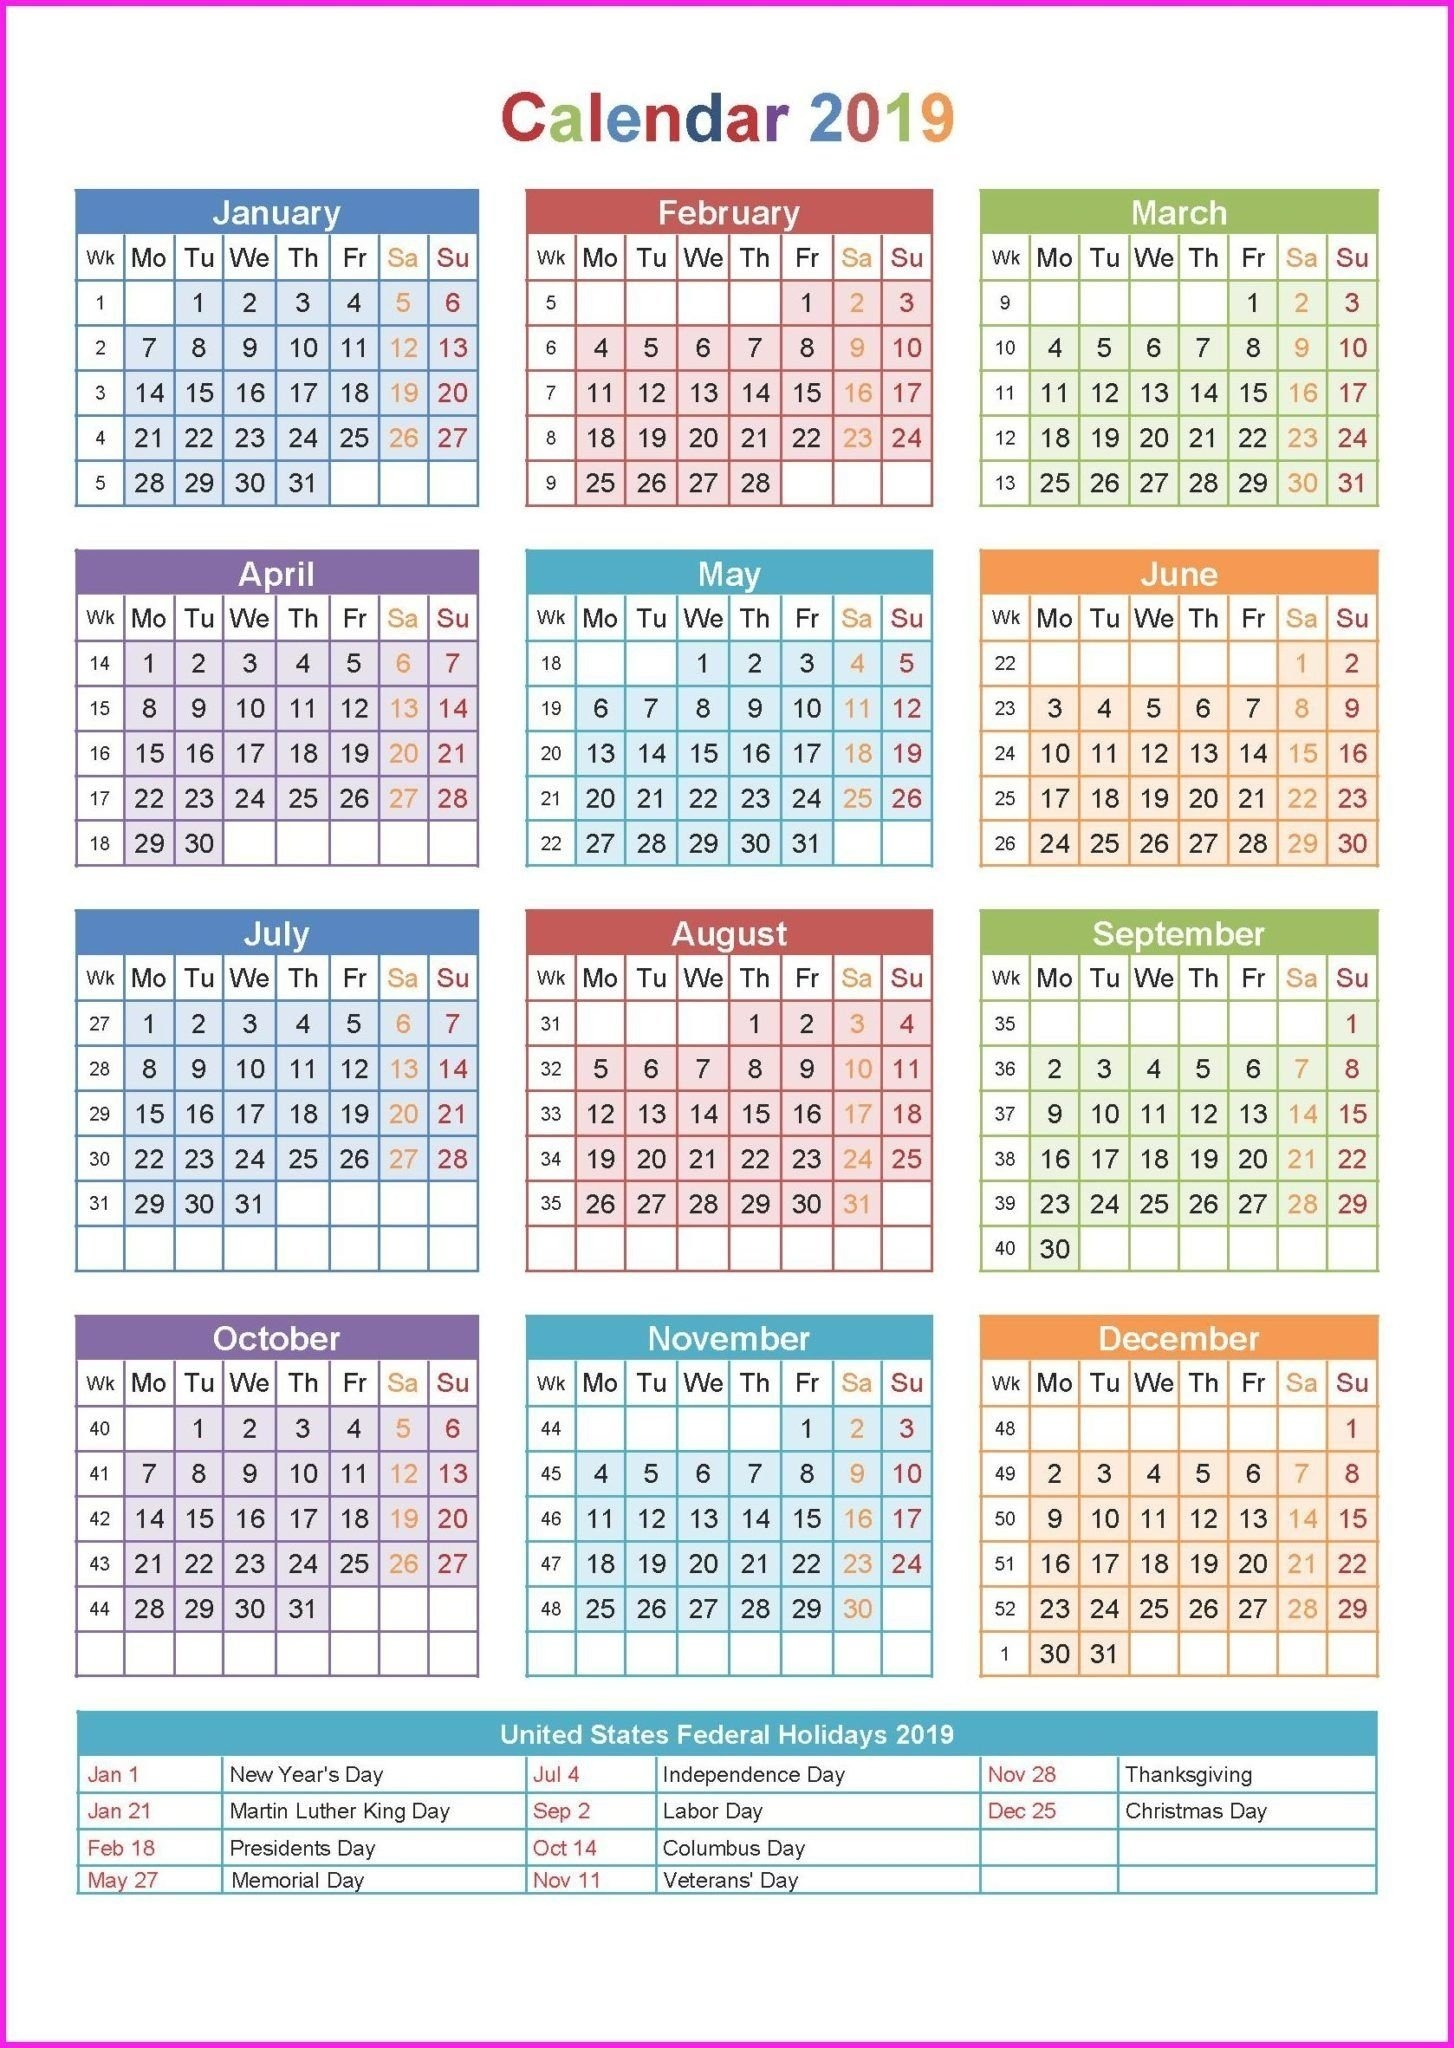 3 Year Calendar On One Page   Ten Free Printable Calendar 2020-2021 with Three Year Calendar 2019 2021 2021 Calendar Pedia